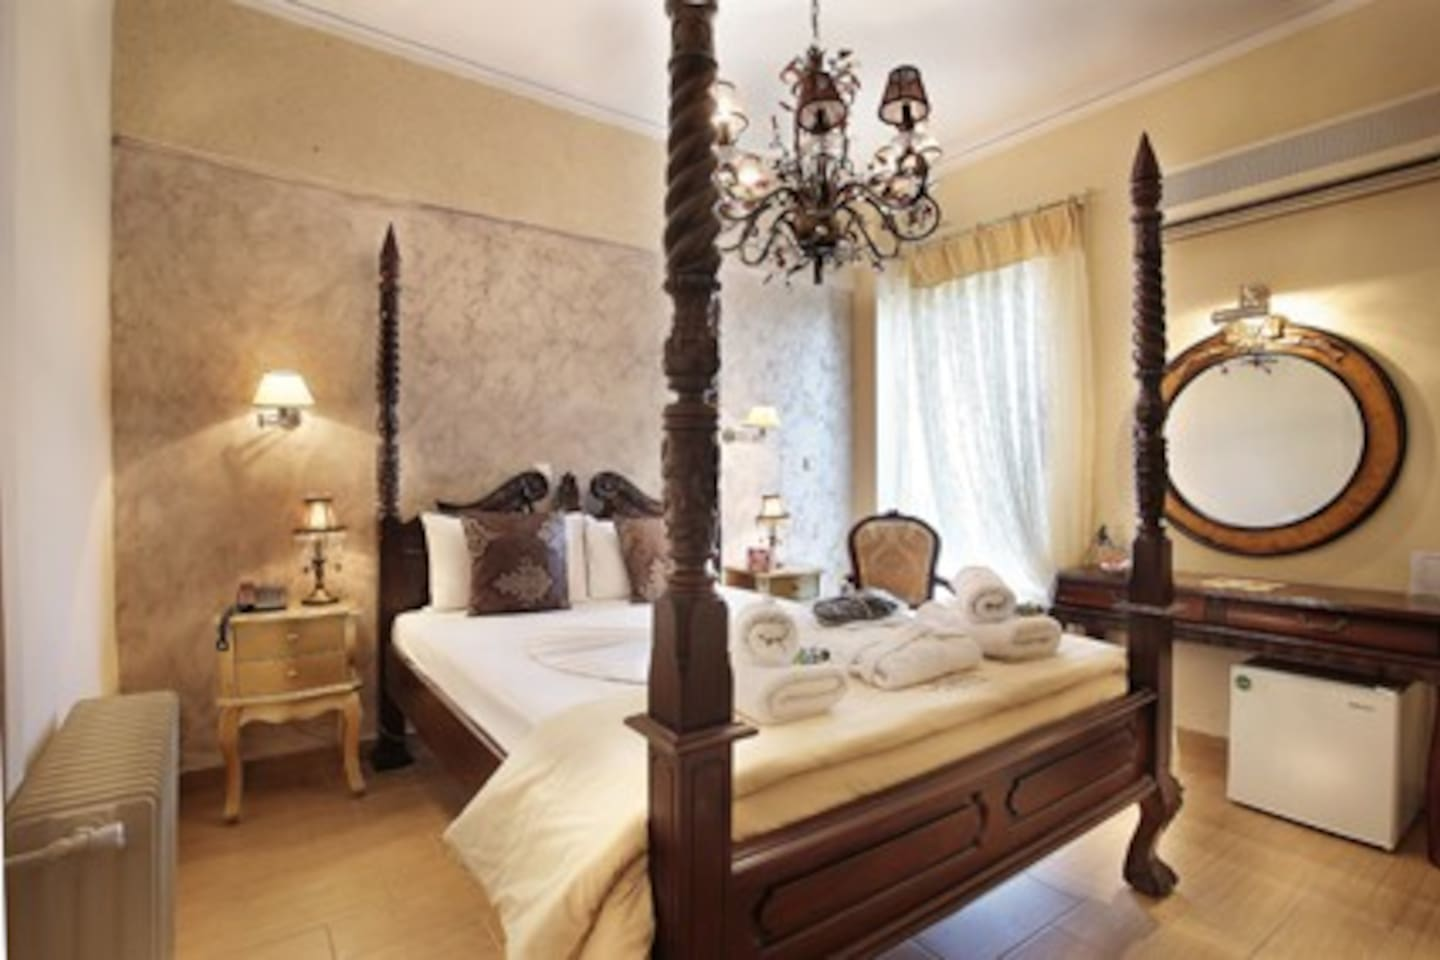 SINGLE ROOM IN ANIXI BOUTIQUE HOTEL